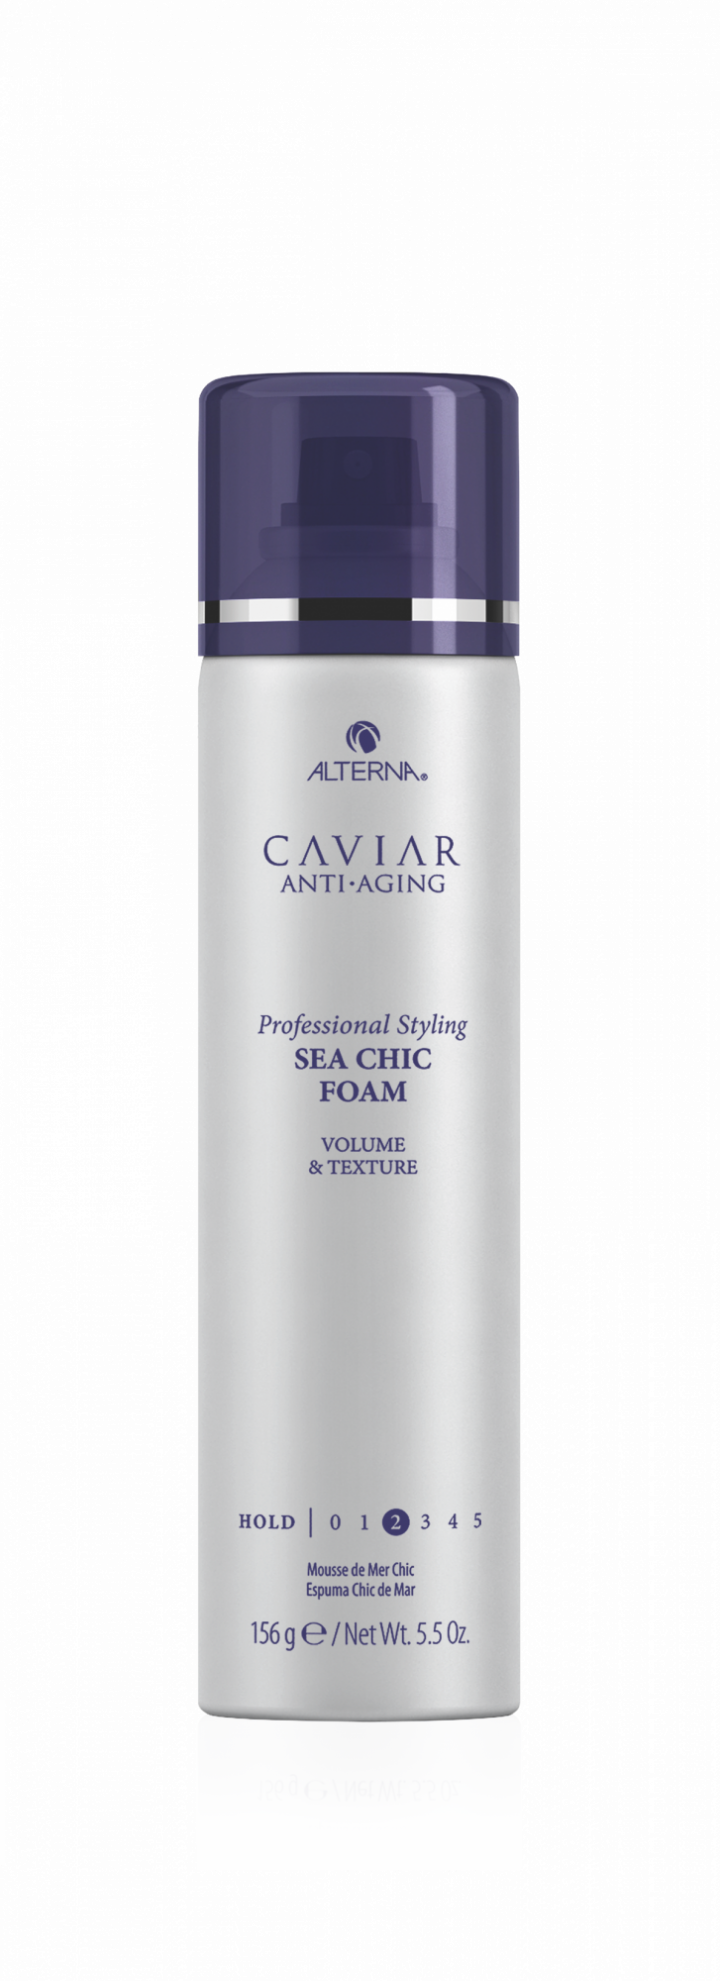 Caviar Anti-Aging PROFESSIONAL STYLING Sea Chic Foam